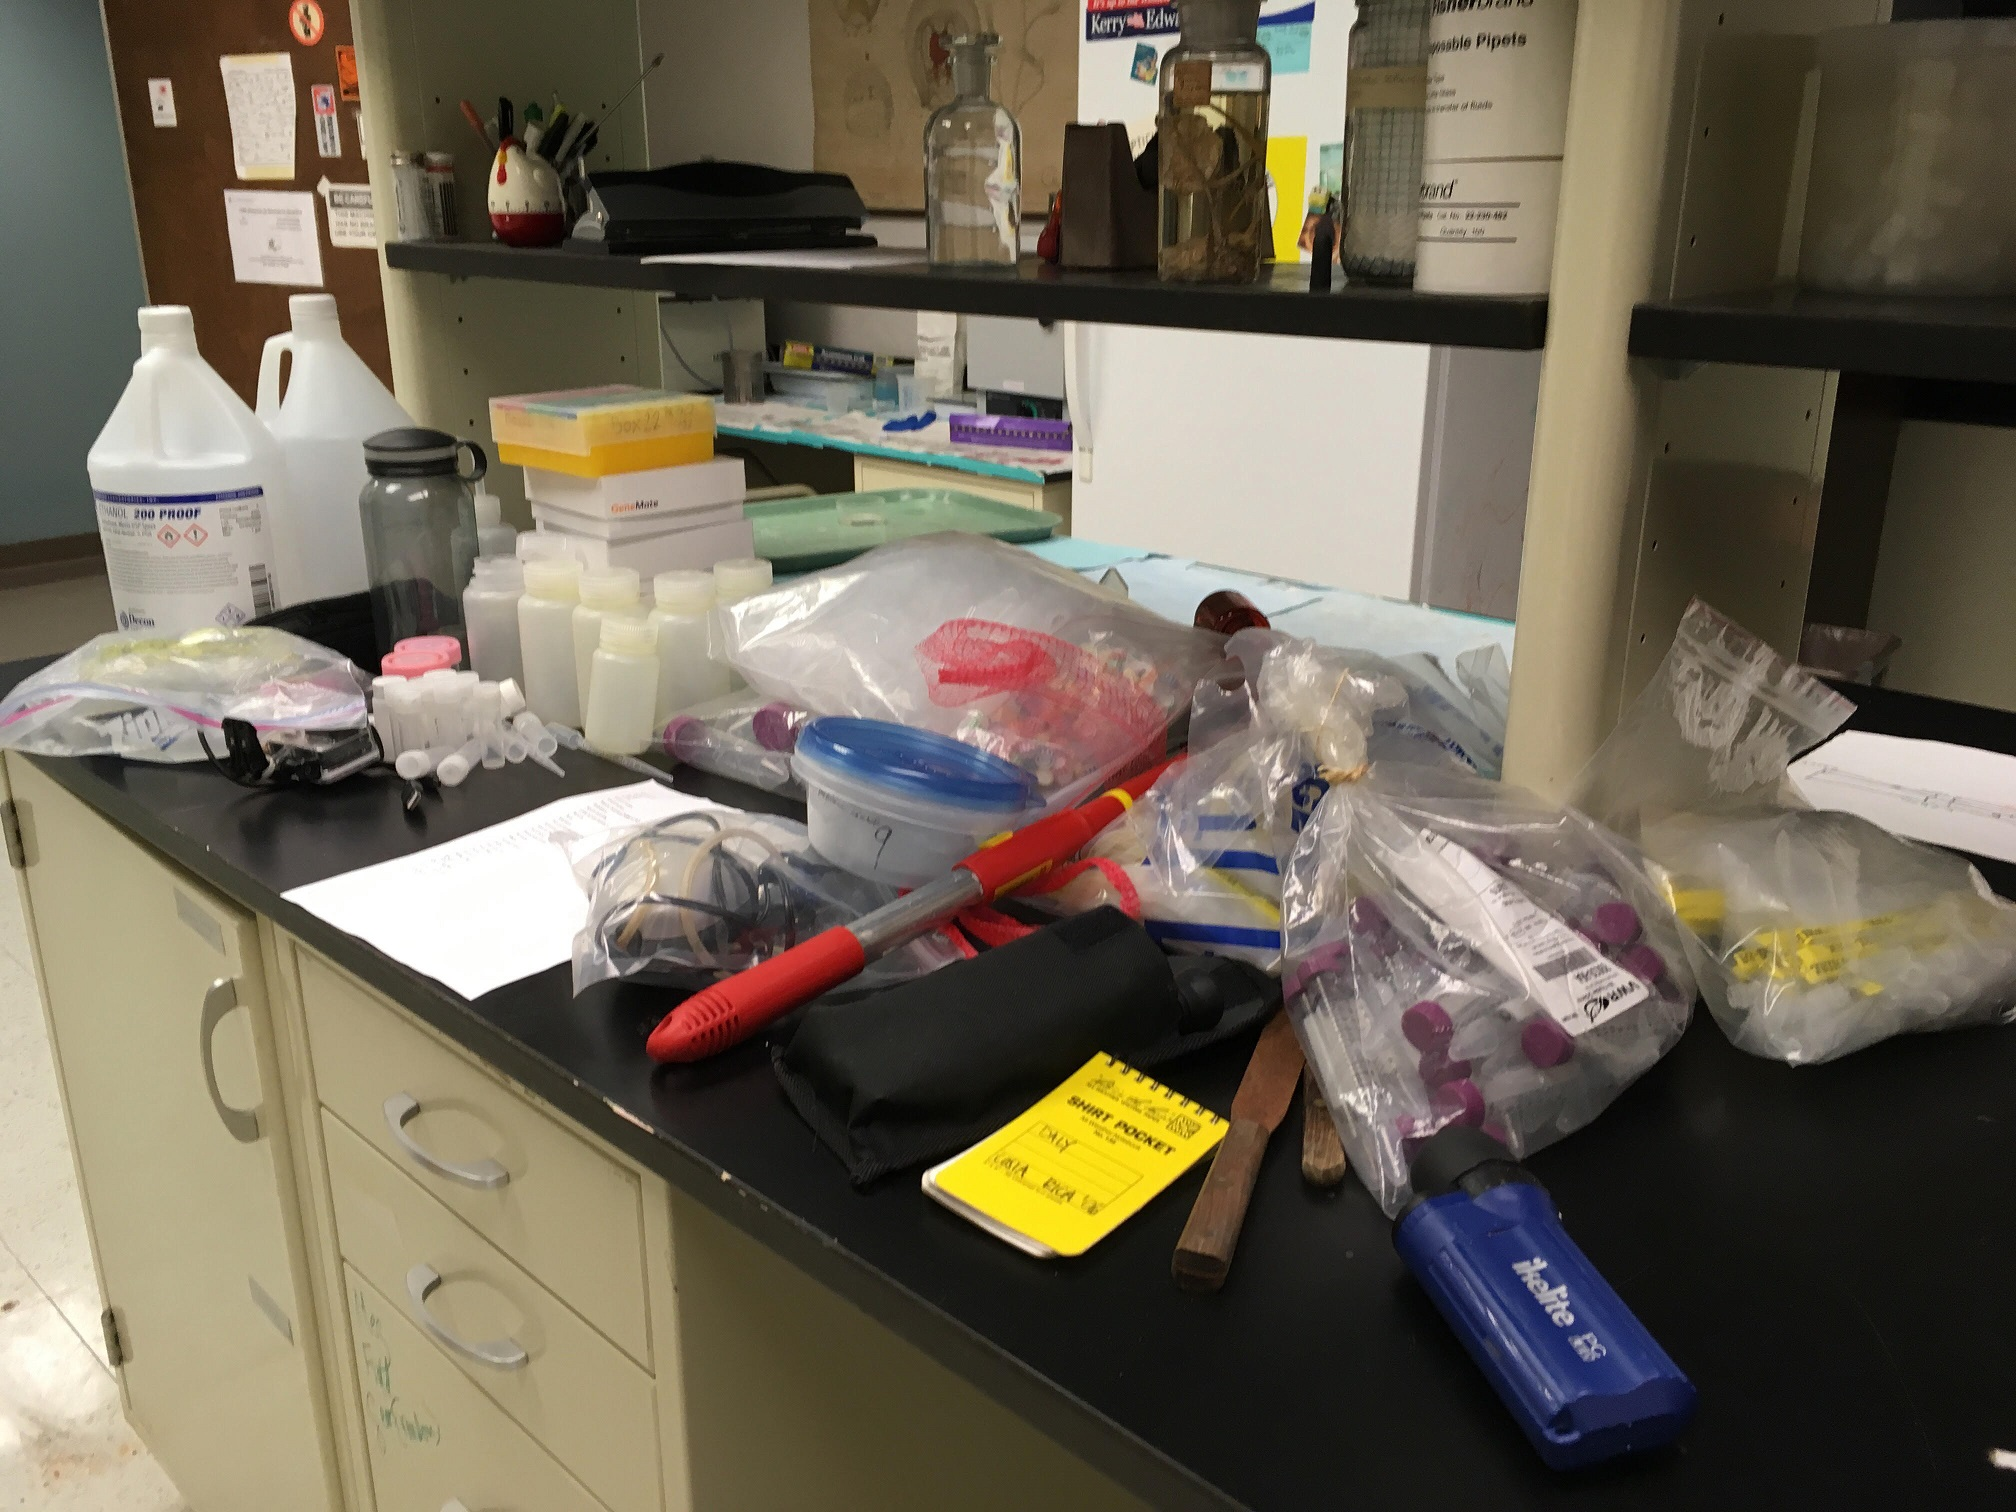 Sampling gear for sea anemone research staged in the lab